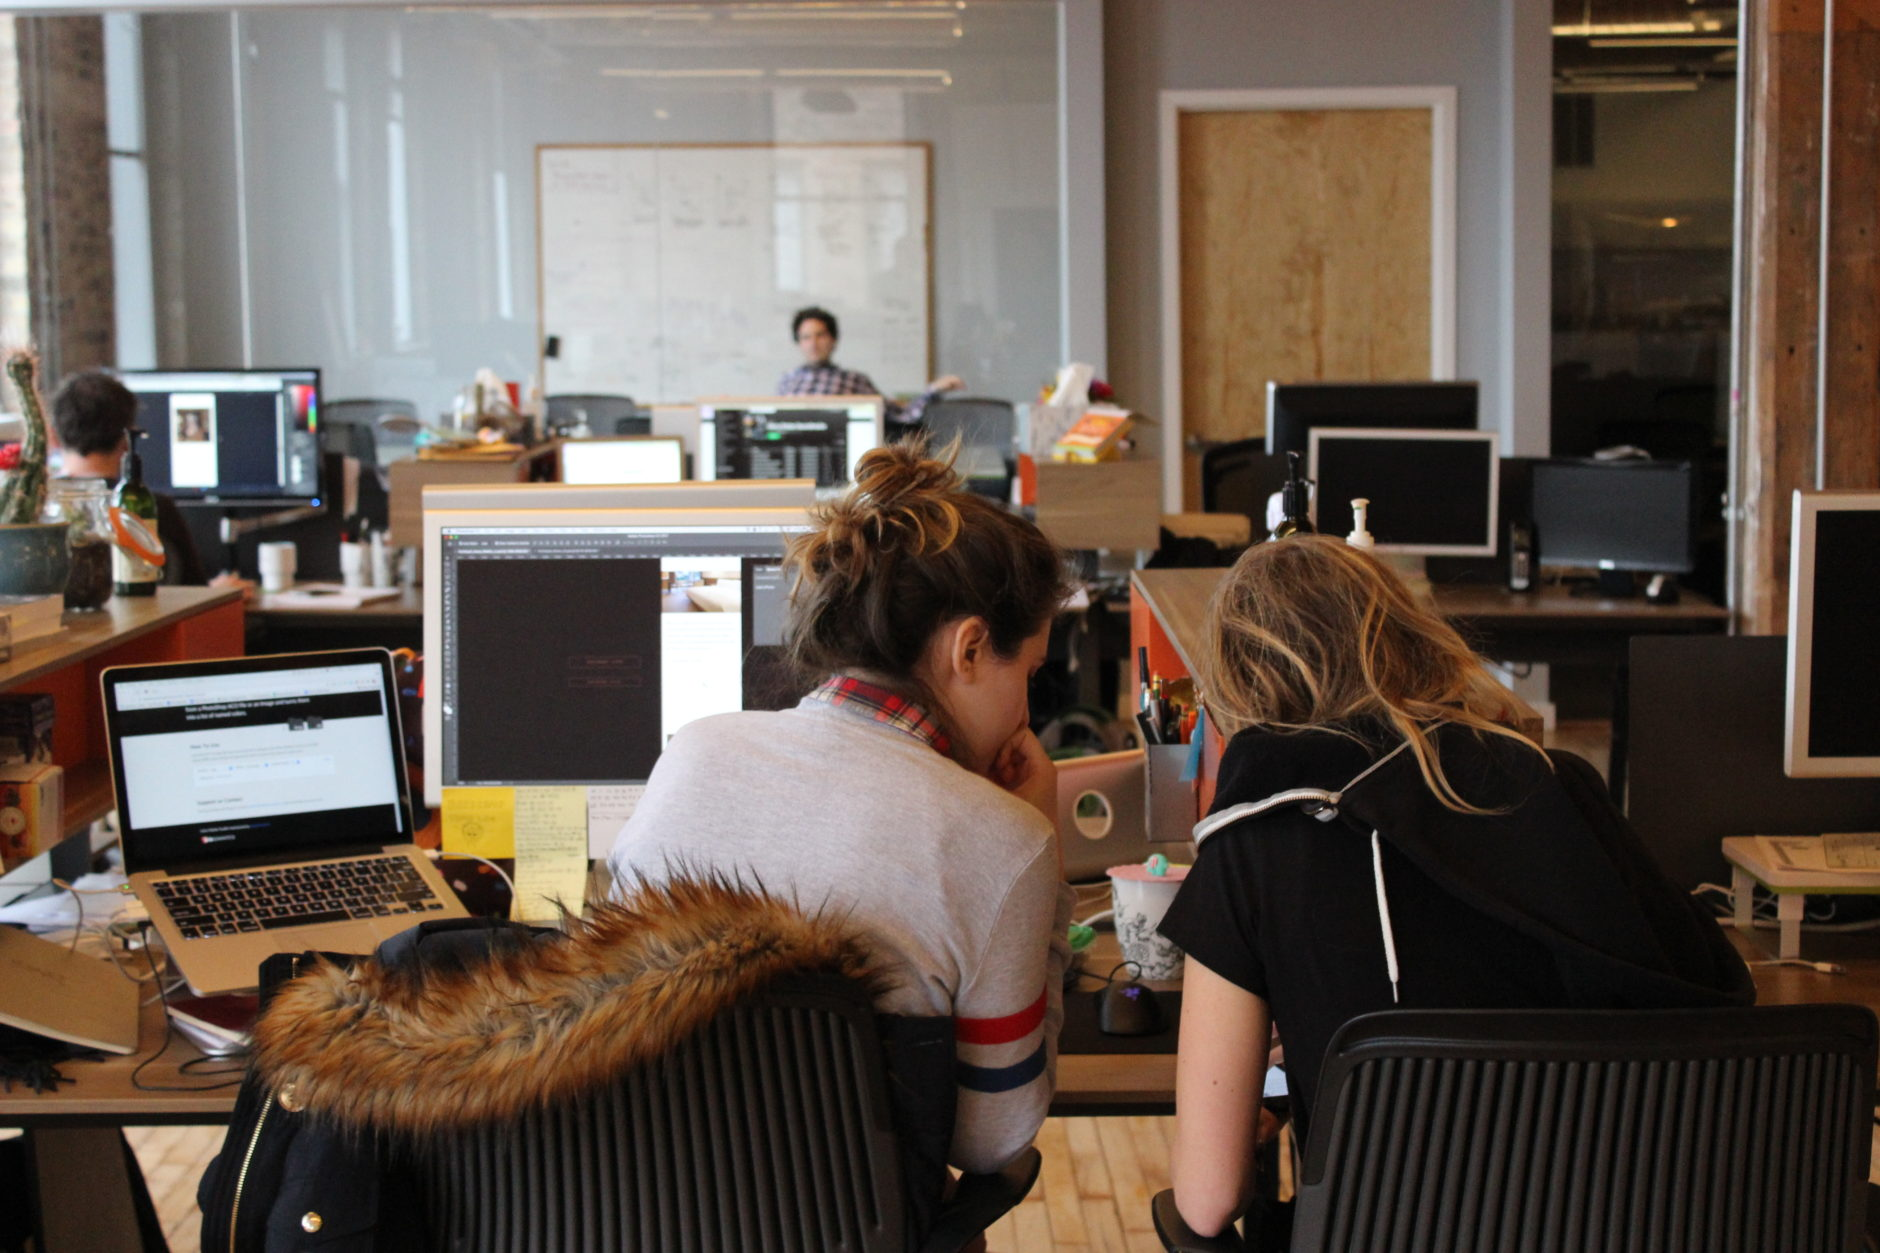 Image showing the backs of two designers sitting at their desks working together.